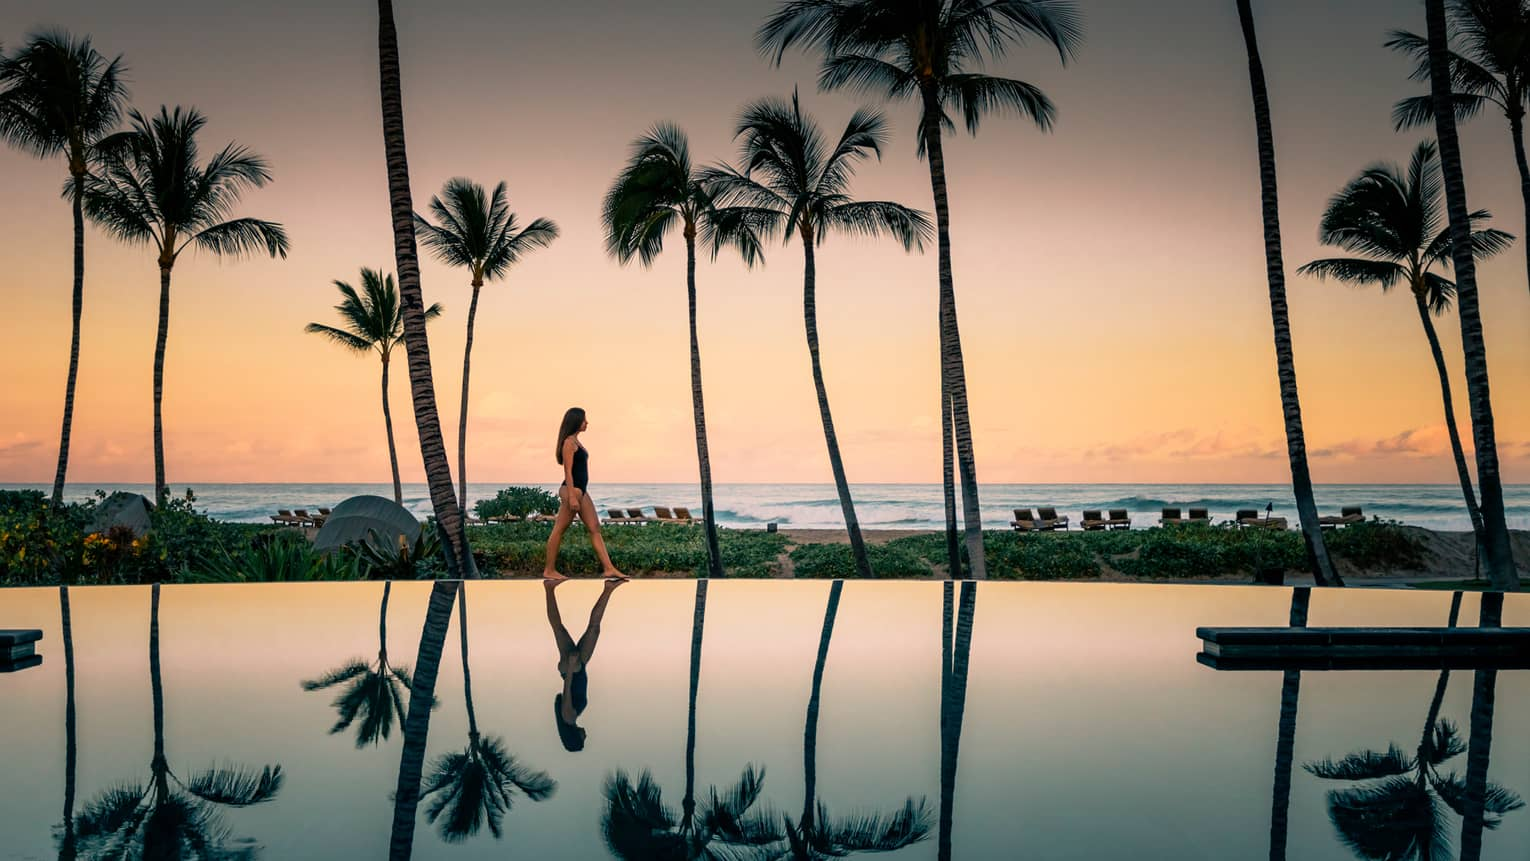 Woman in swimsuit walks by Palm Grove Pool at sunset, palm trees reflected on surface